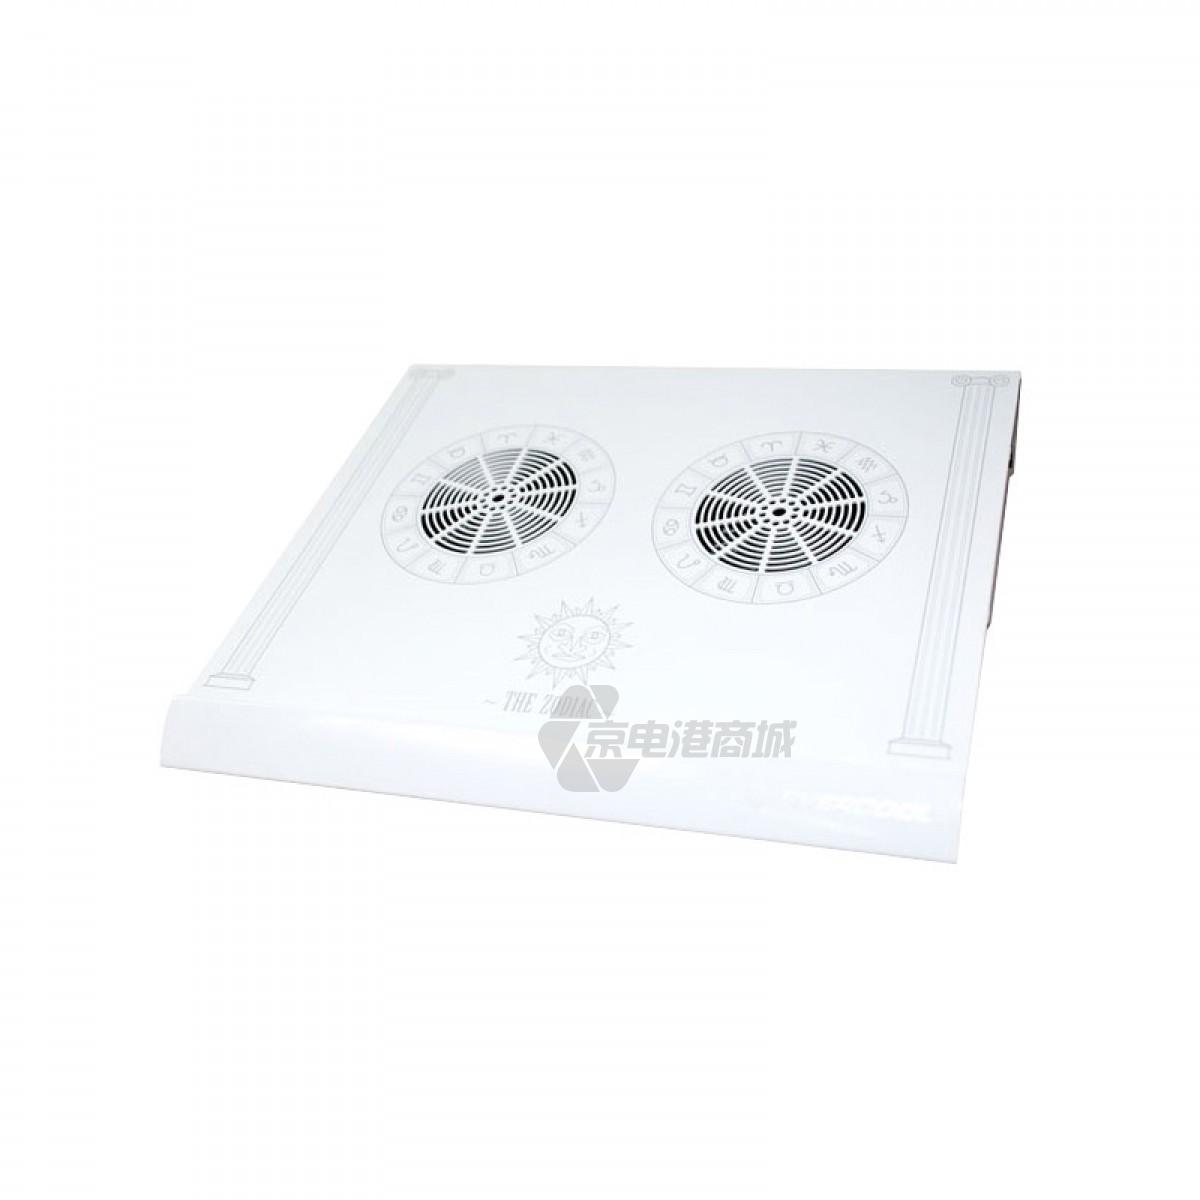 EVERCOOL ZDOIAC SNOW WHITE-NP 301 324x270x35mm COOLER